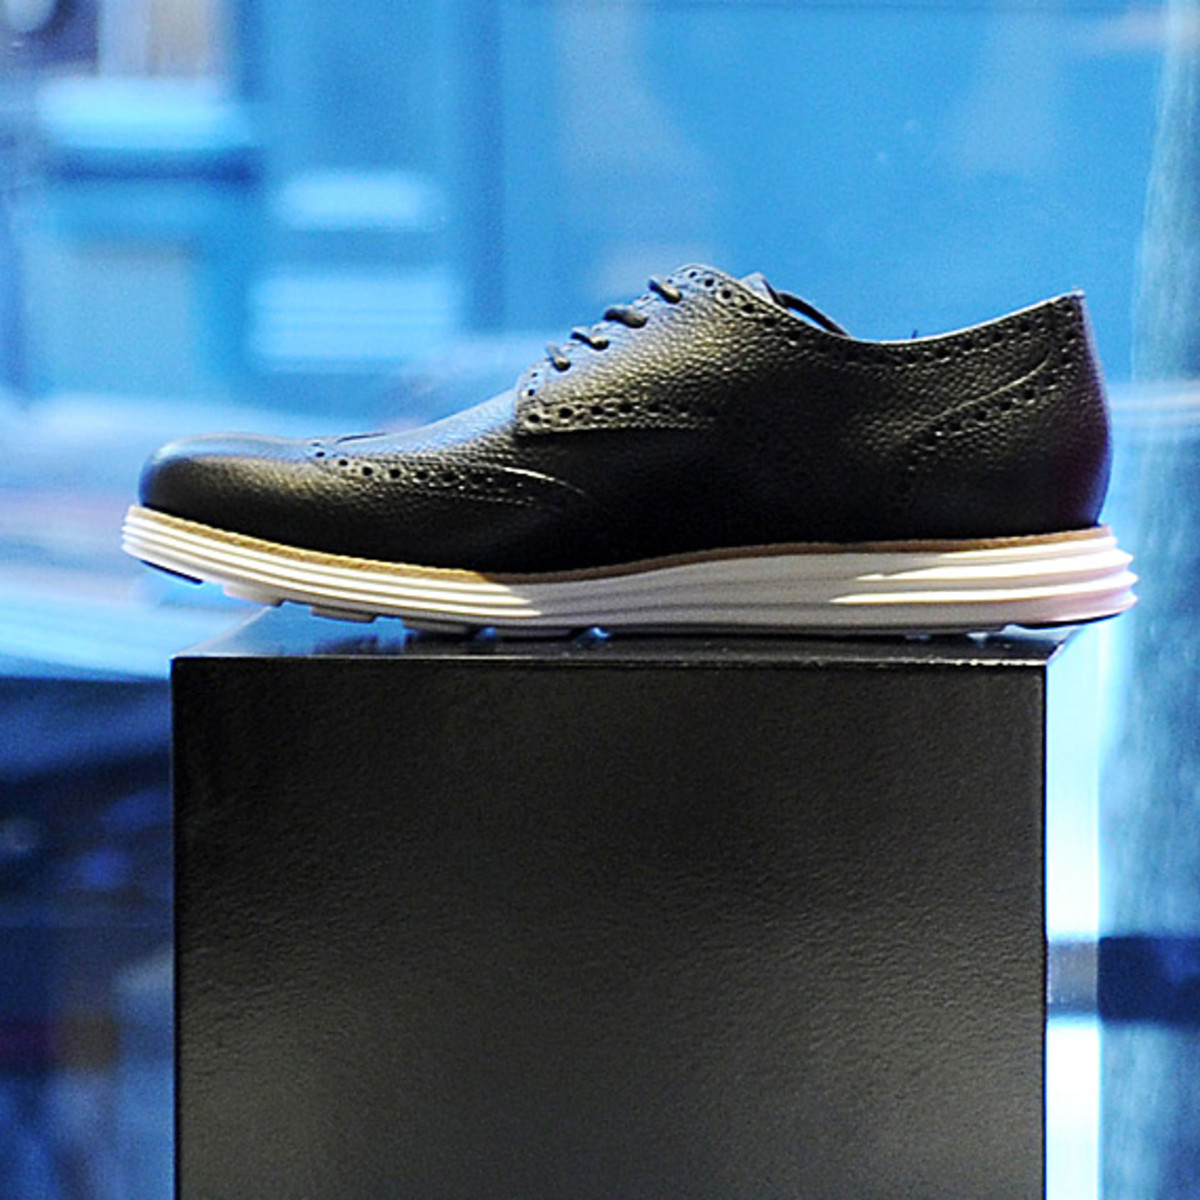 fragment-design-cole-haan-lunargrand-collection-launch-08